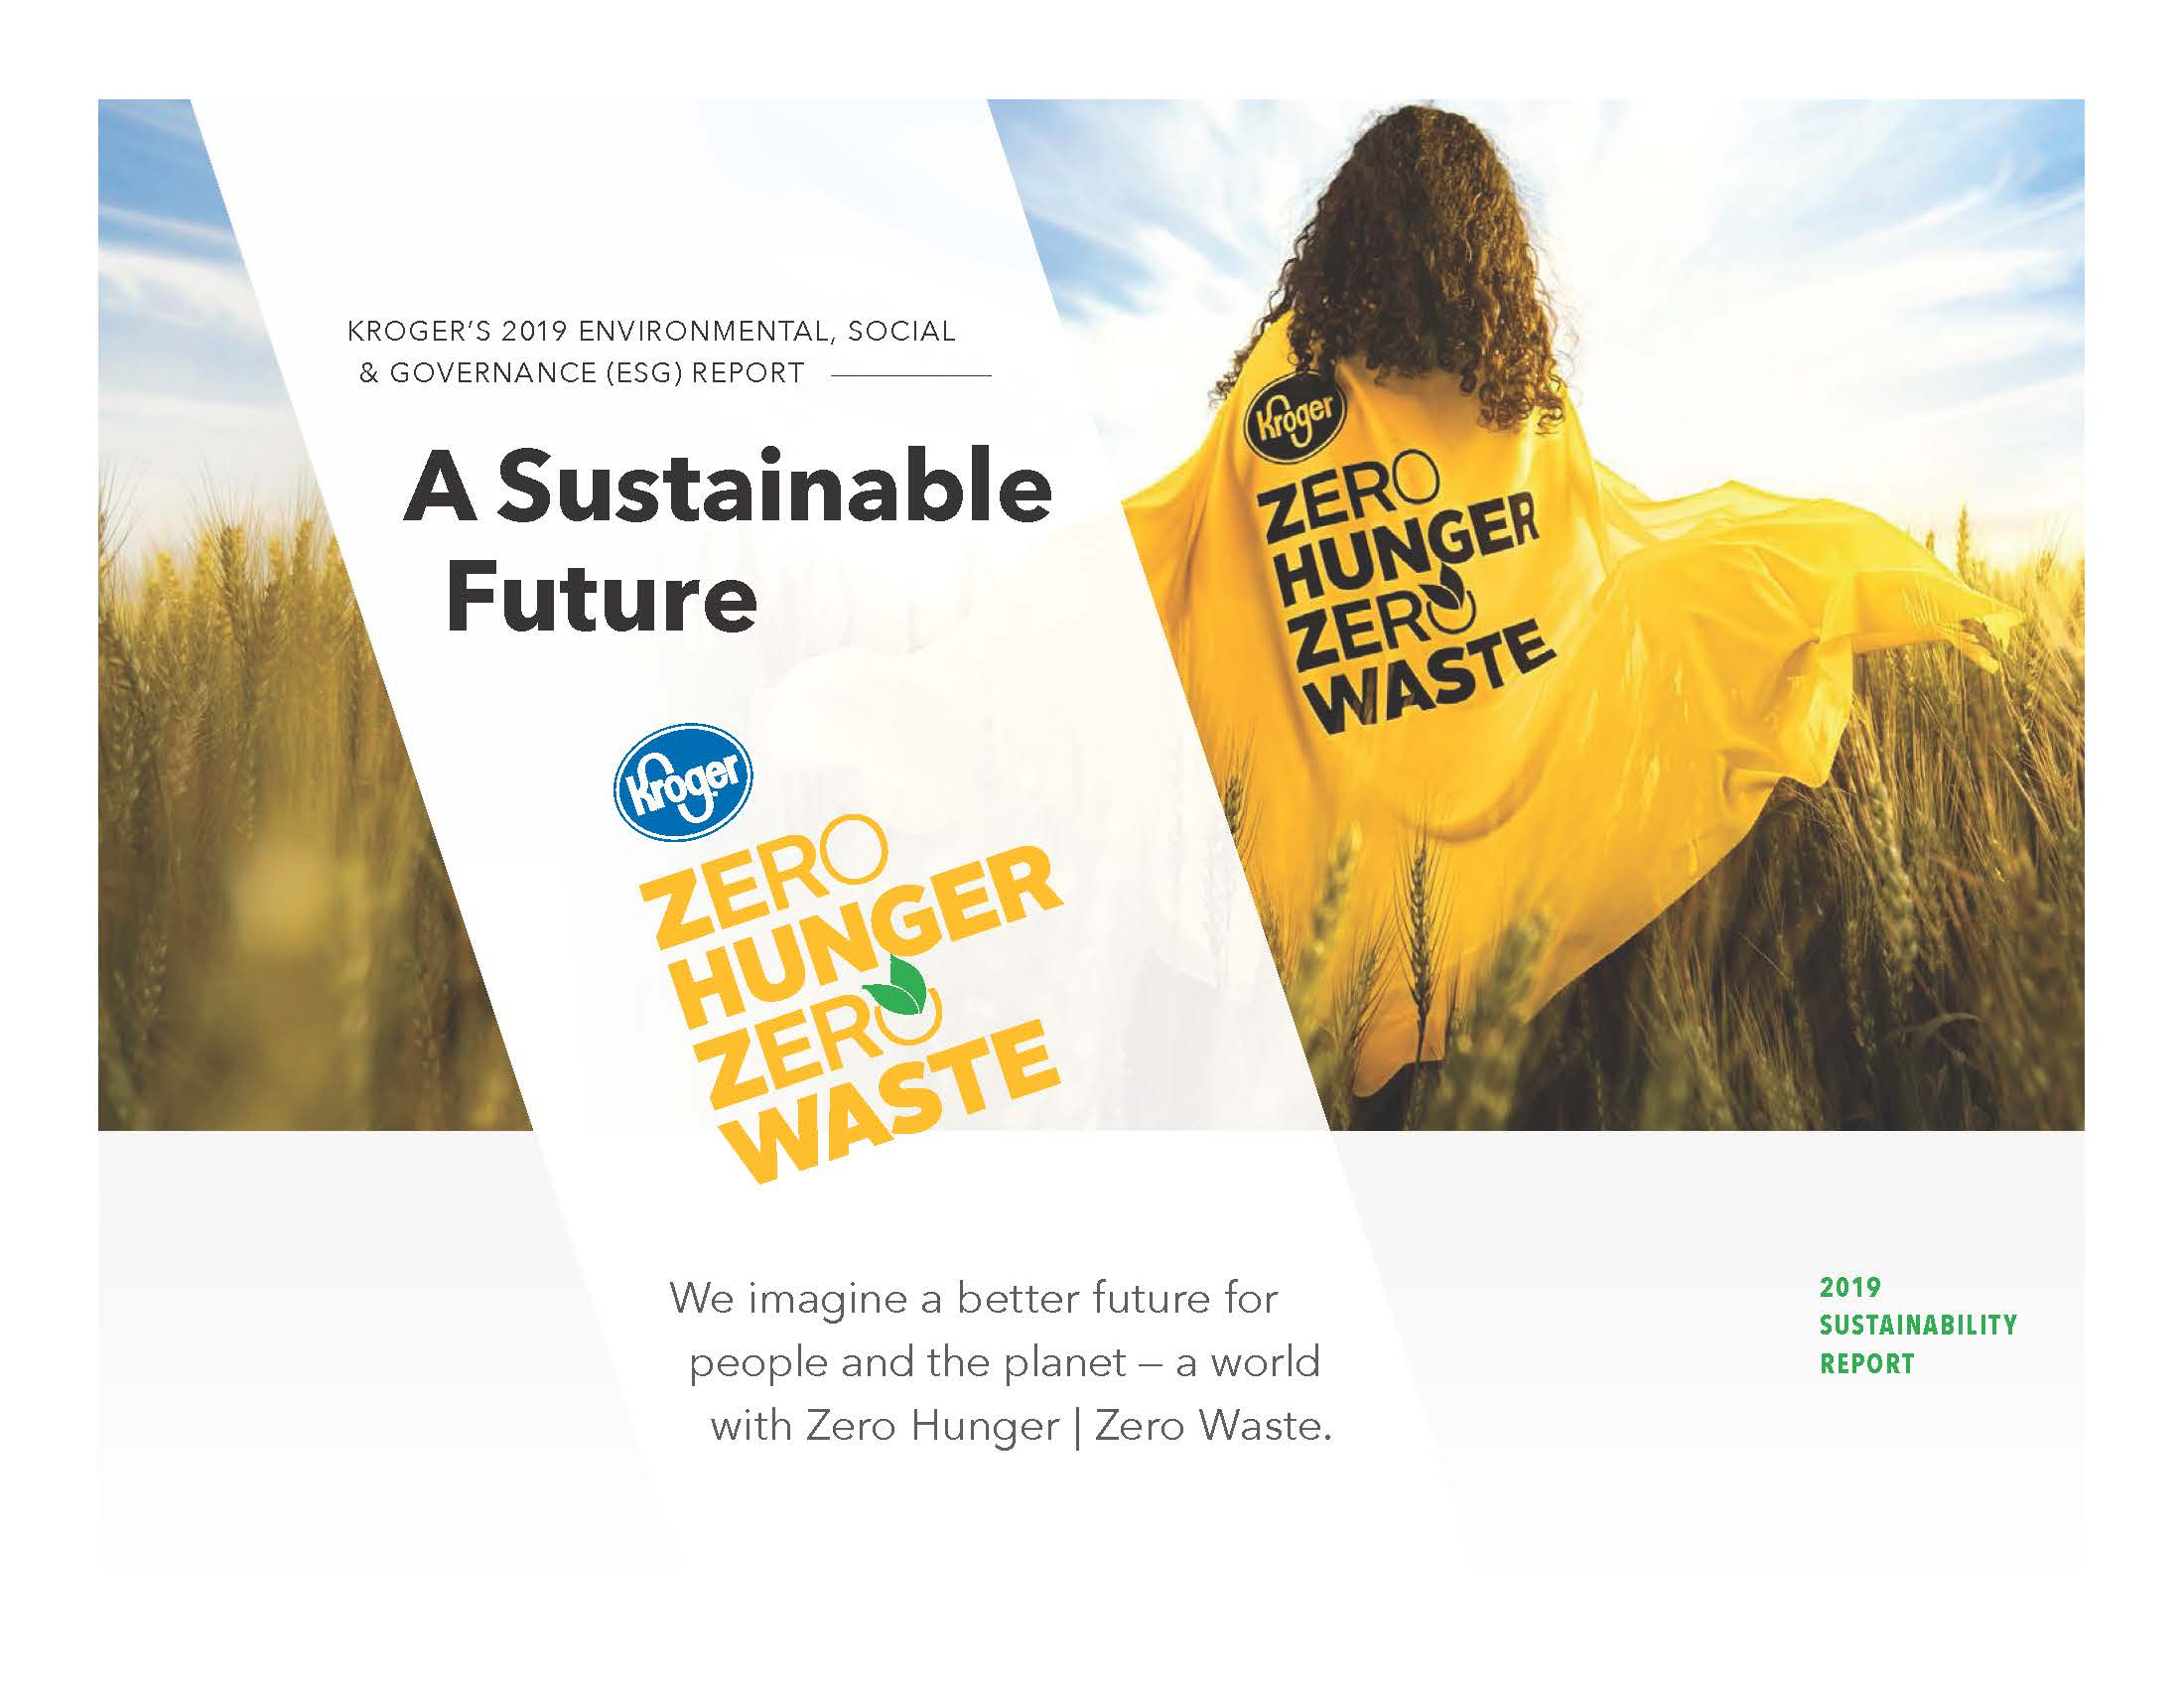 Sustainability The Kroger Co